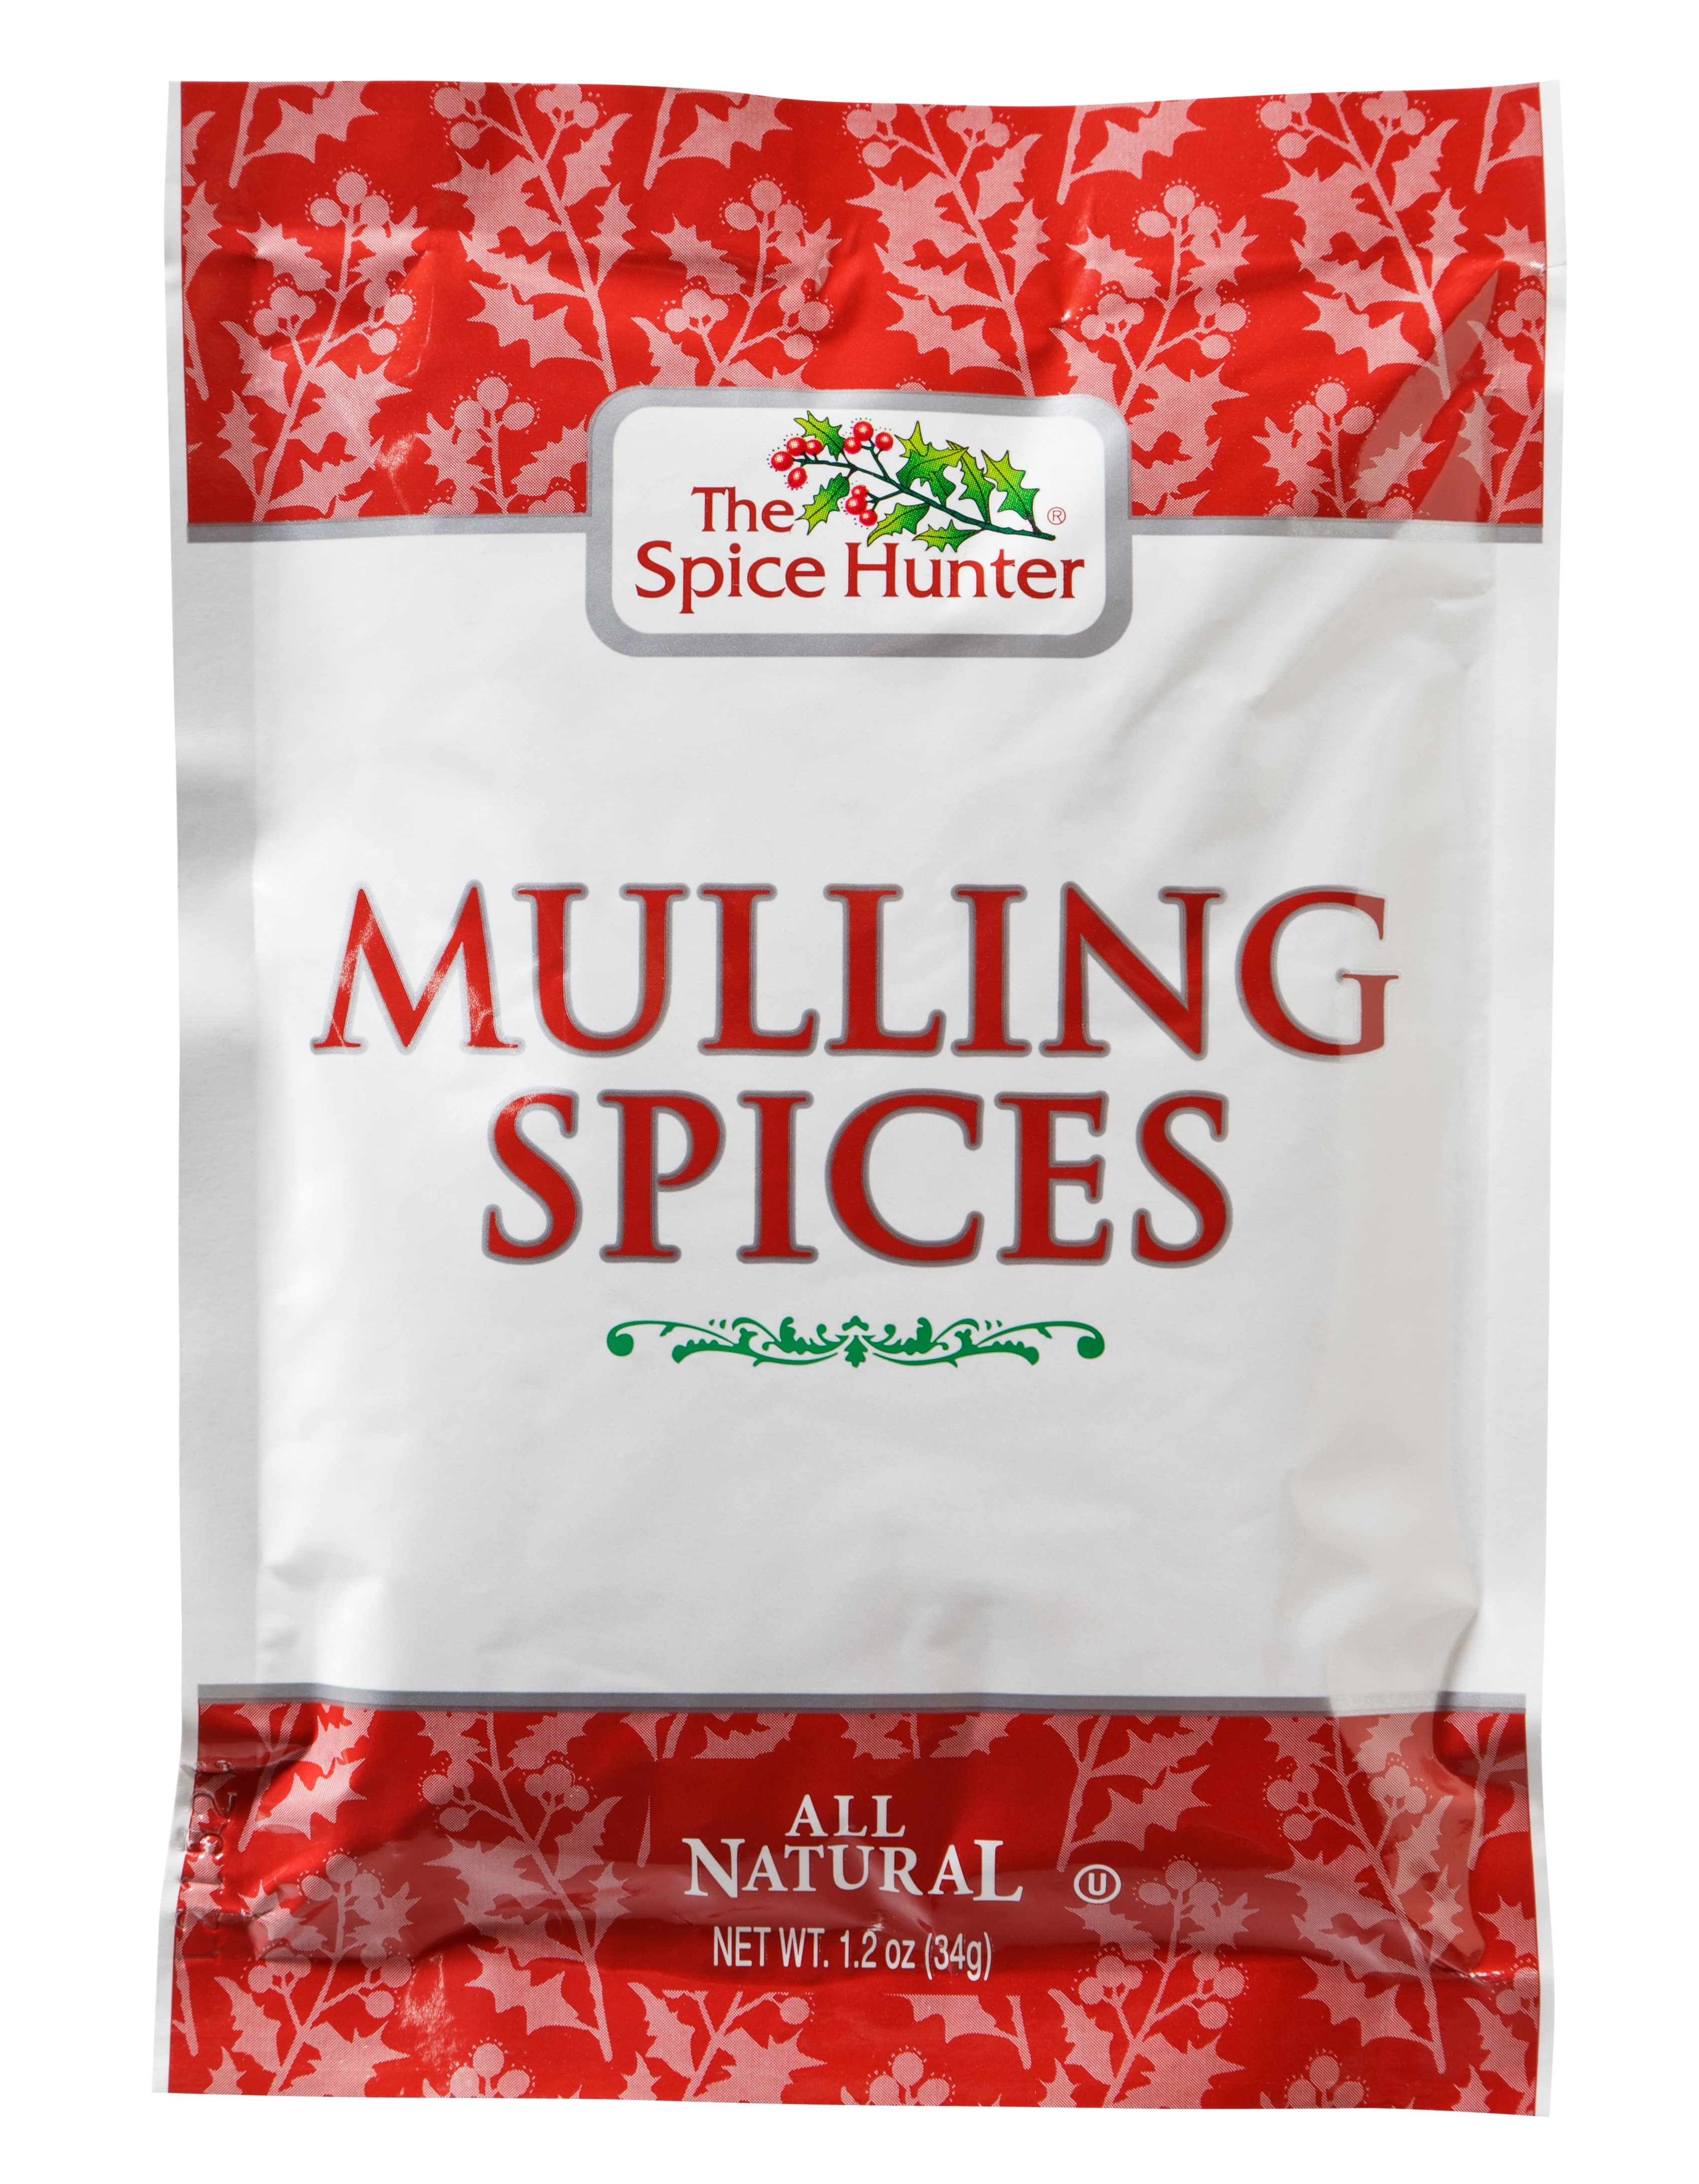 The Spice Hunter Mulling Spice ‑ Shop Herbs & Spices at H‑E‑B